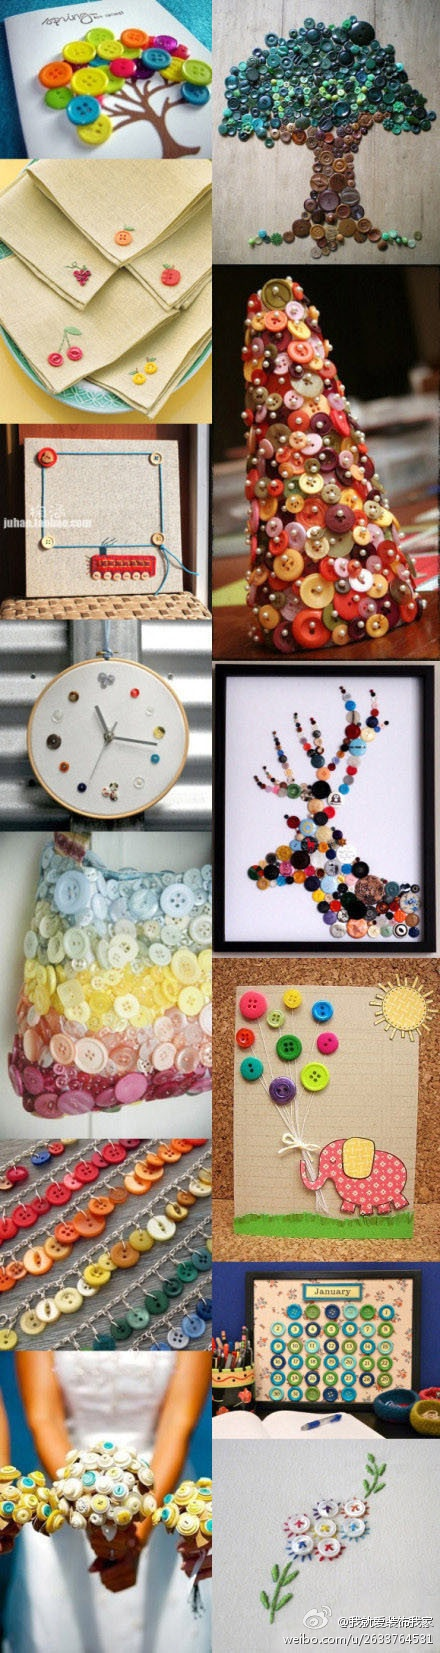 Manualidades con botones: Projects, Buttonart, Crafts Ideas, Buttons Crafts, Buttons Buttons, Buttoncraft, Button Crafts, Buttons Art, Diy